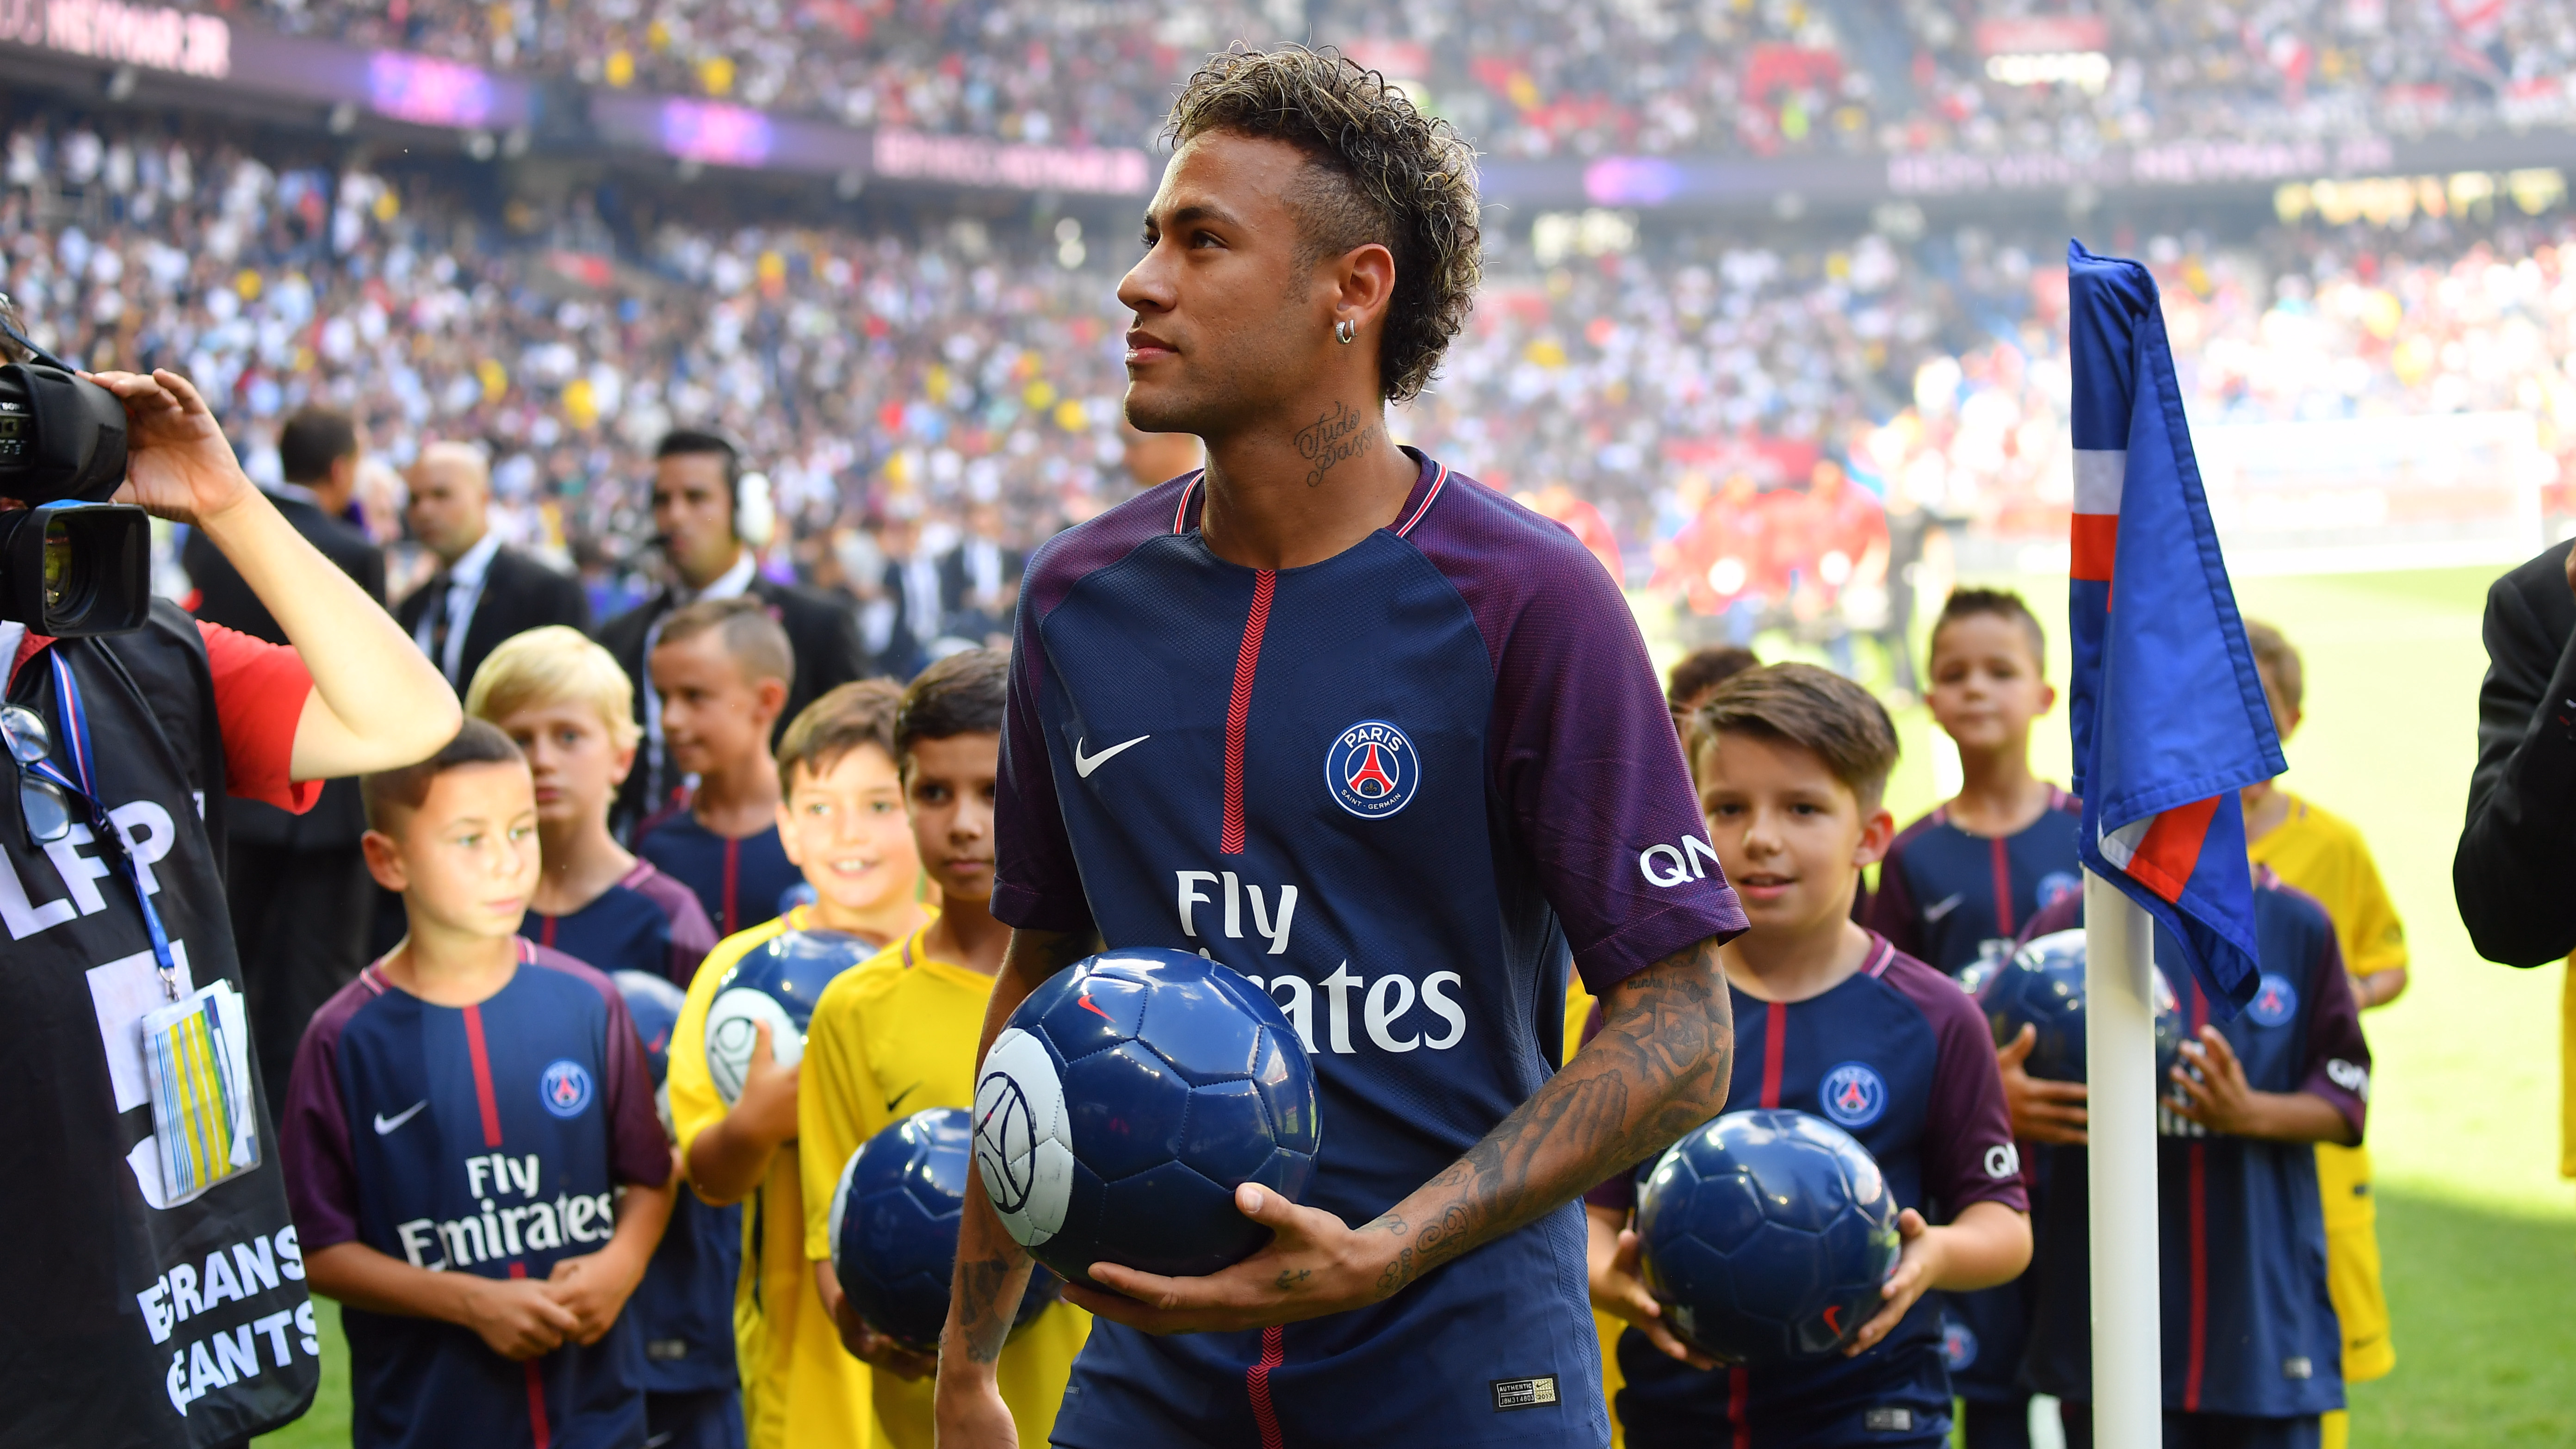 Neymar only arrived in Paris two years ago. Image: PA Images